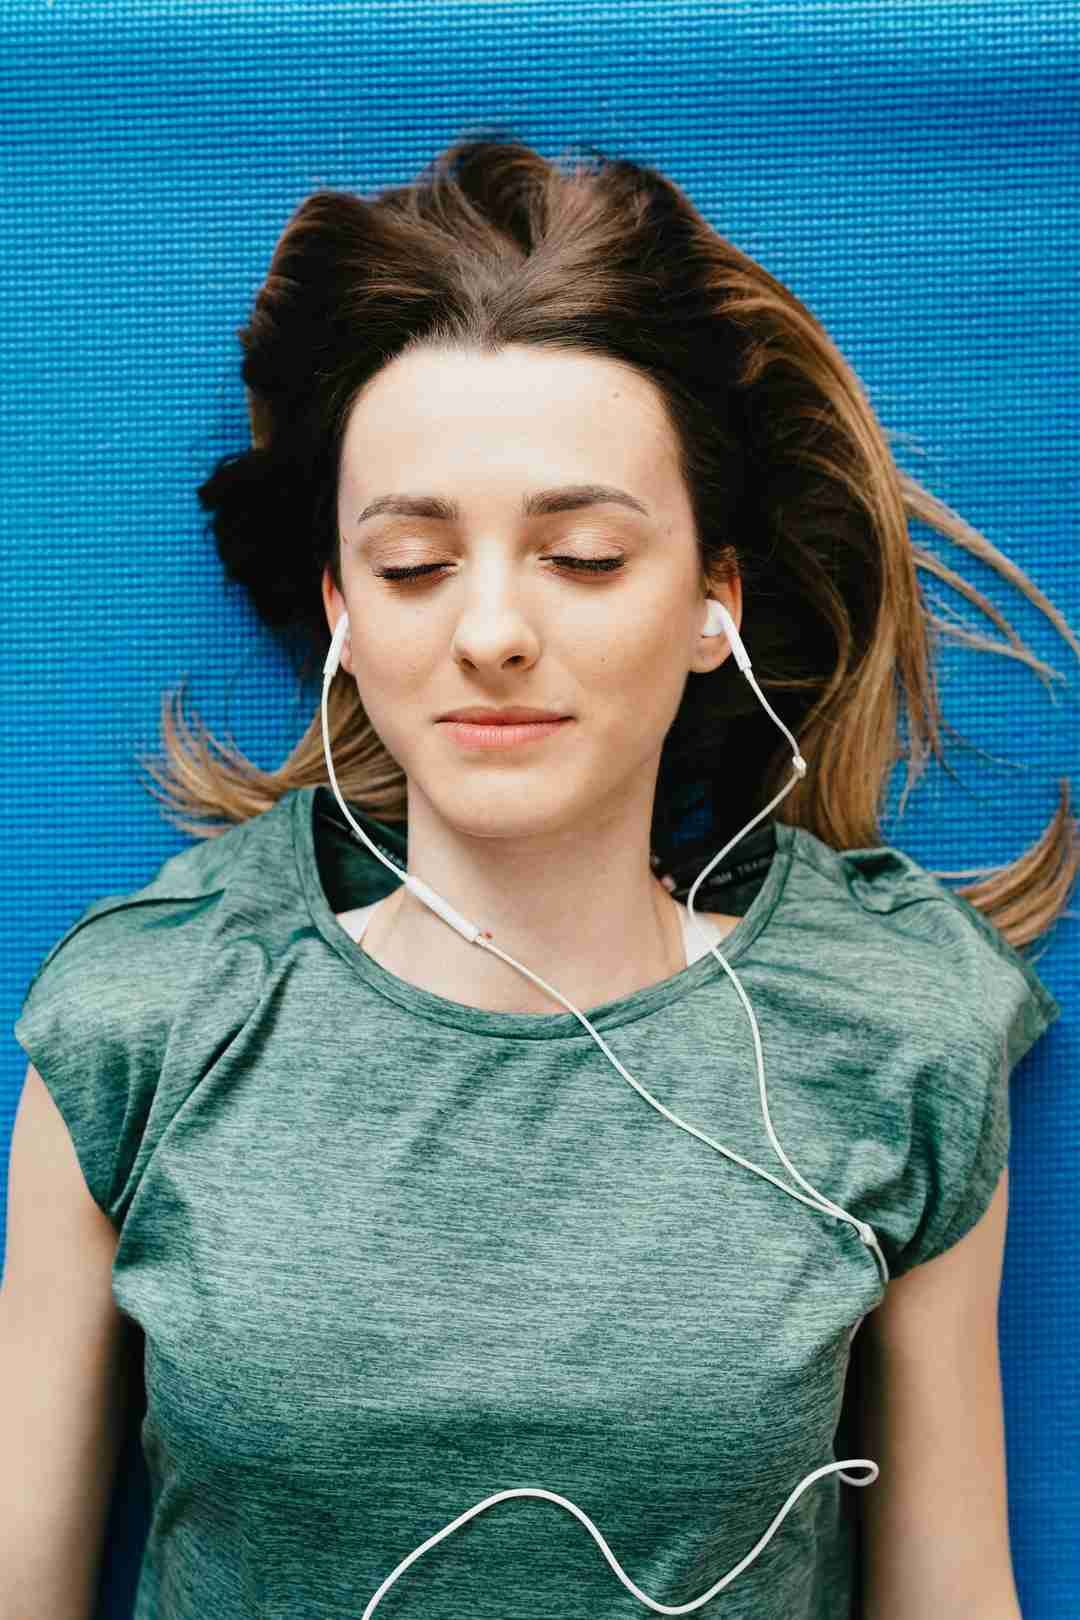 the best ways to relax without alcohol music